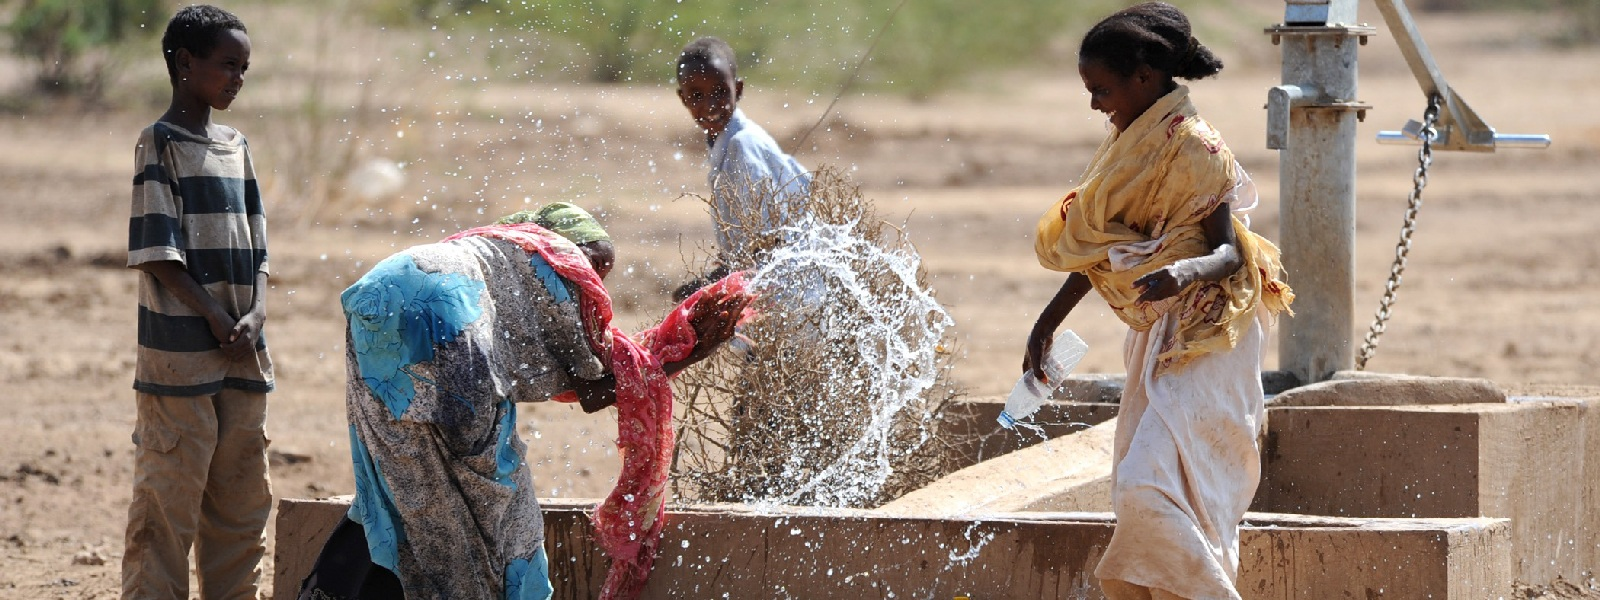 Lack of access to clean water is a major contributor to the global disease burden. Girls and women spend more time collecting water than boys and men.